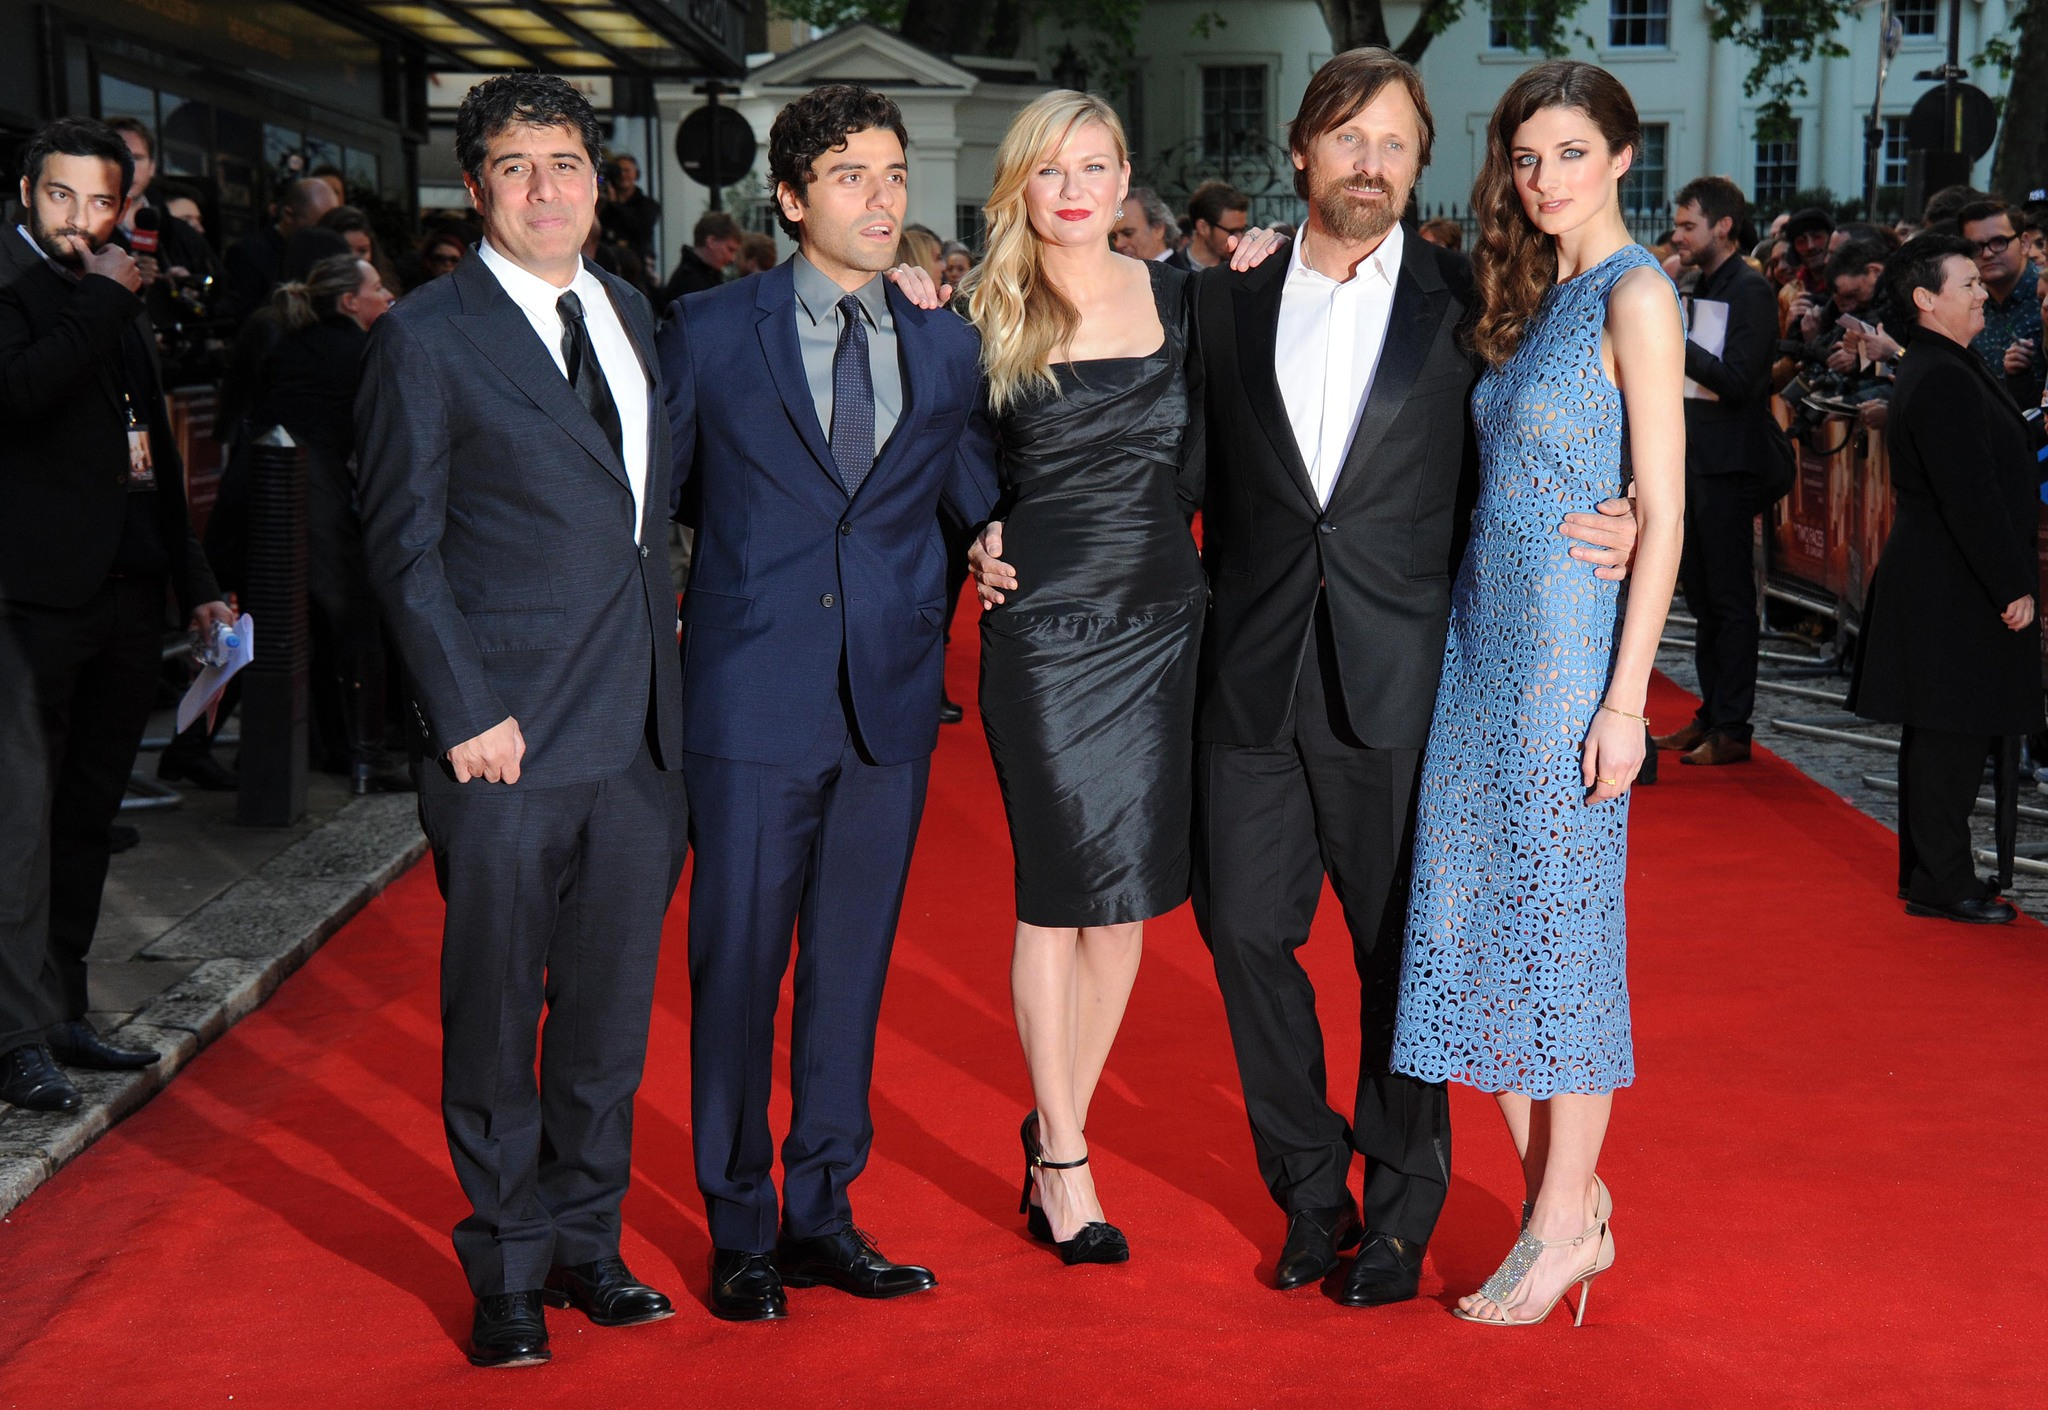 Kirsten Dunst, Viggo Mortensen, Hossein Amini, Daisy Bevan, and Oscar Isaac at an event for The Two Faces of January (2014)